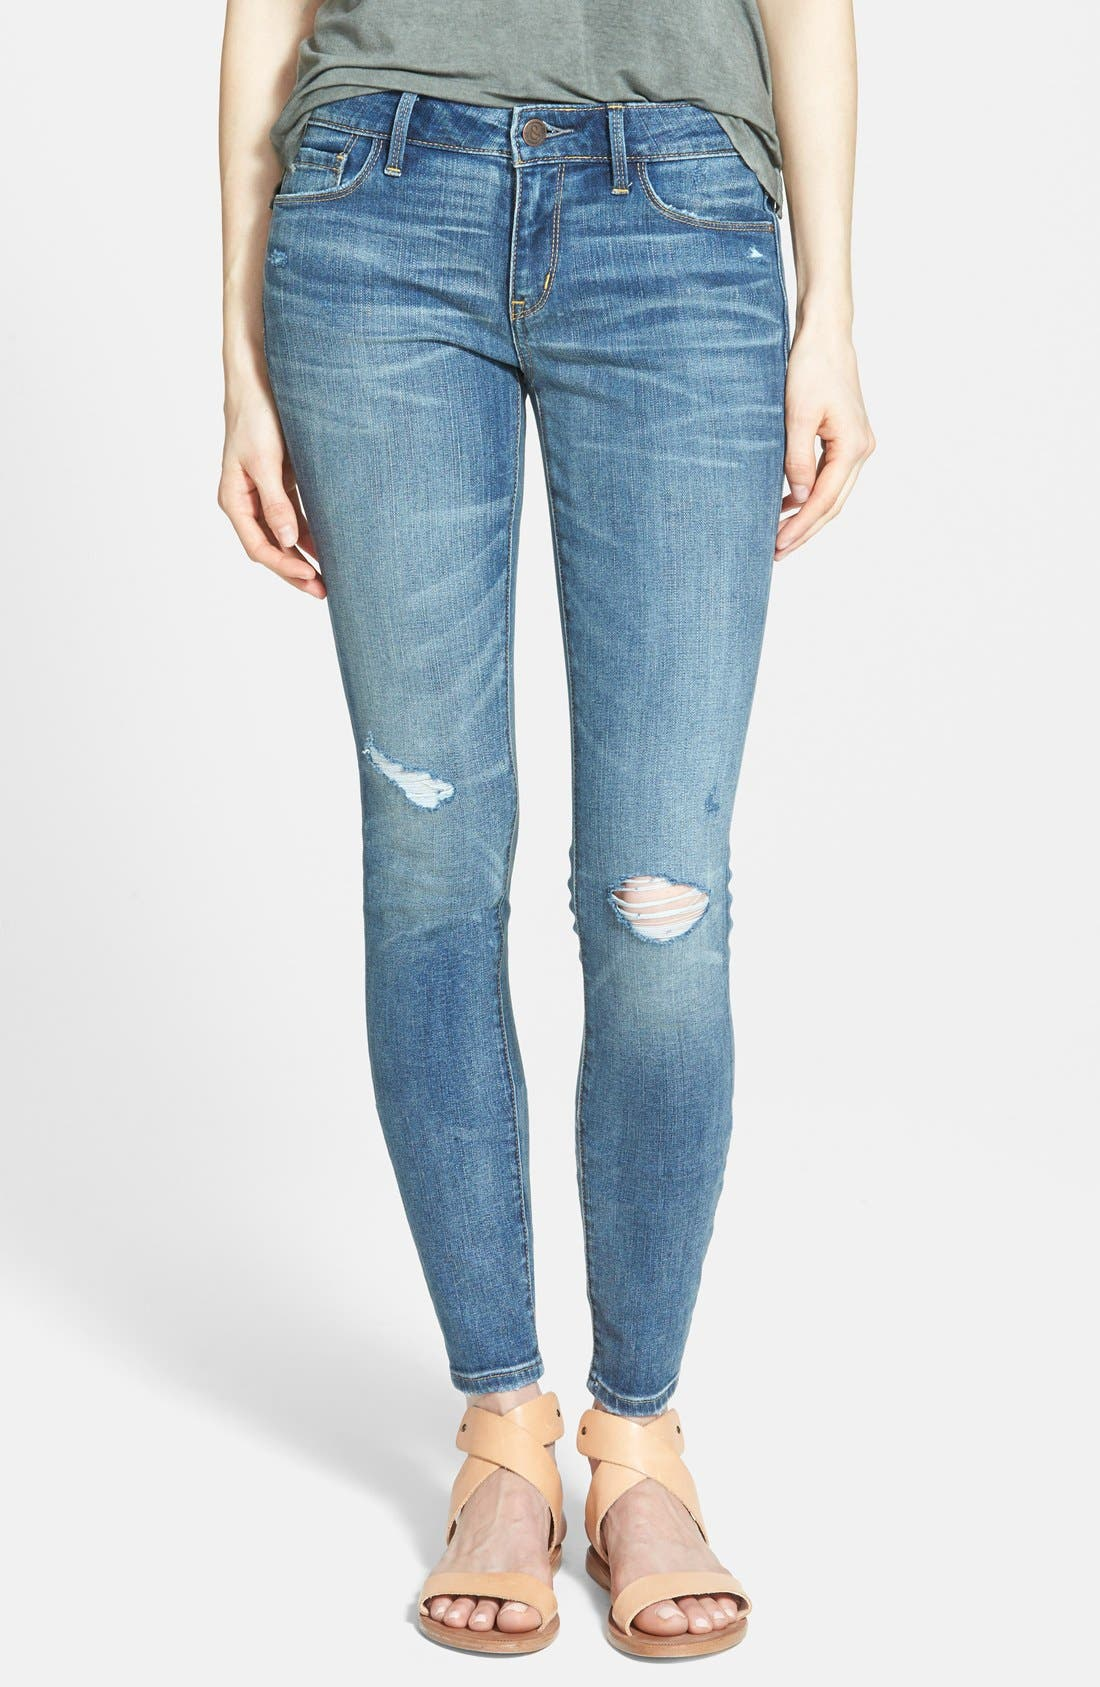 Main Image - Treasure&Bond Skinny Jeans (Medium Wash)